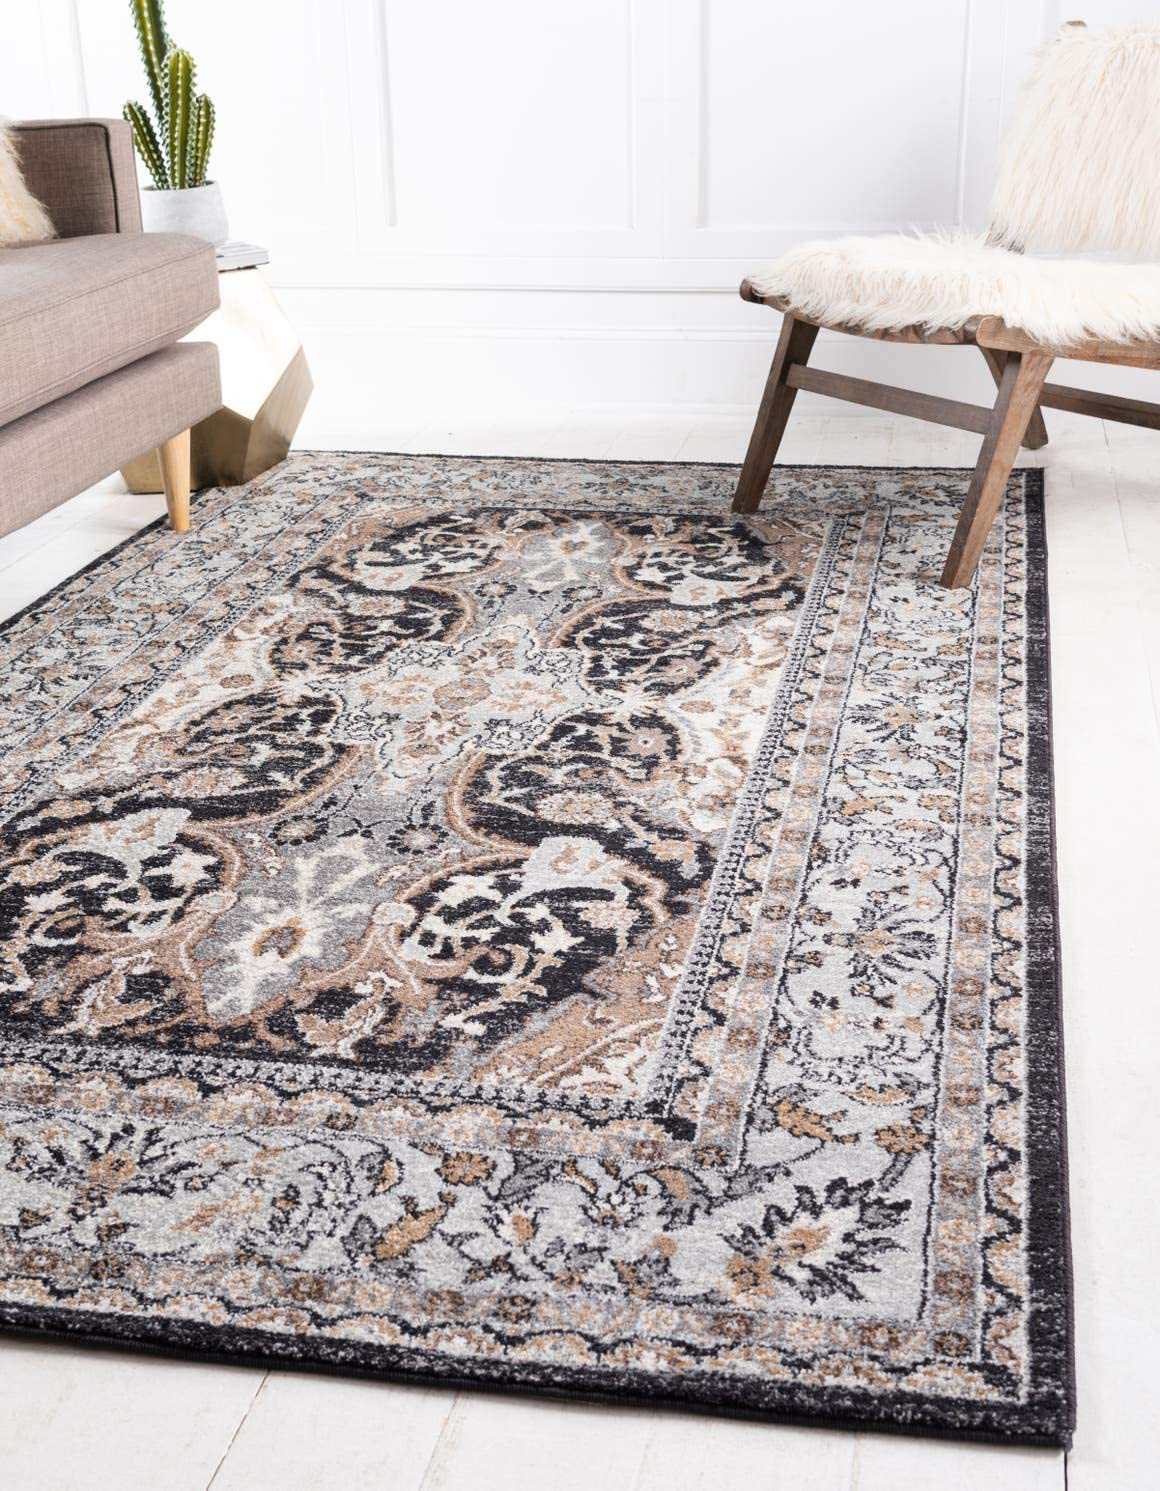 Blue Nile Mills Zohra Indoor Area Rug, Floral Medallion Pattern, Super Soft, Durable, Elegant, Traditional, Oriental, Contemporary Style, Jute Backing, Brown, 8 x 10